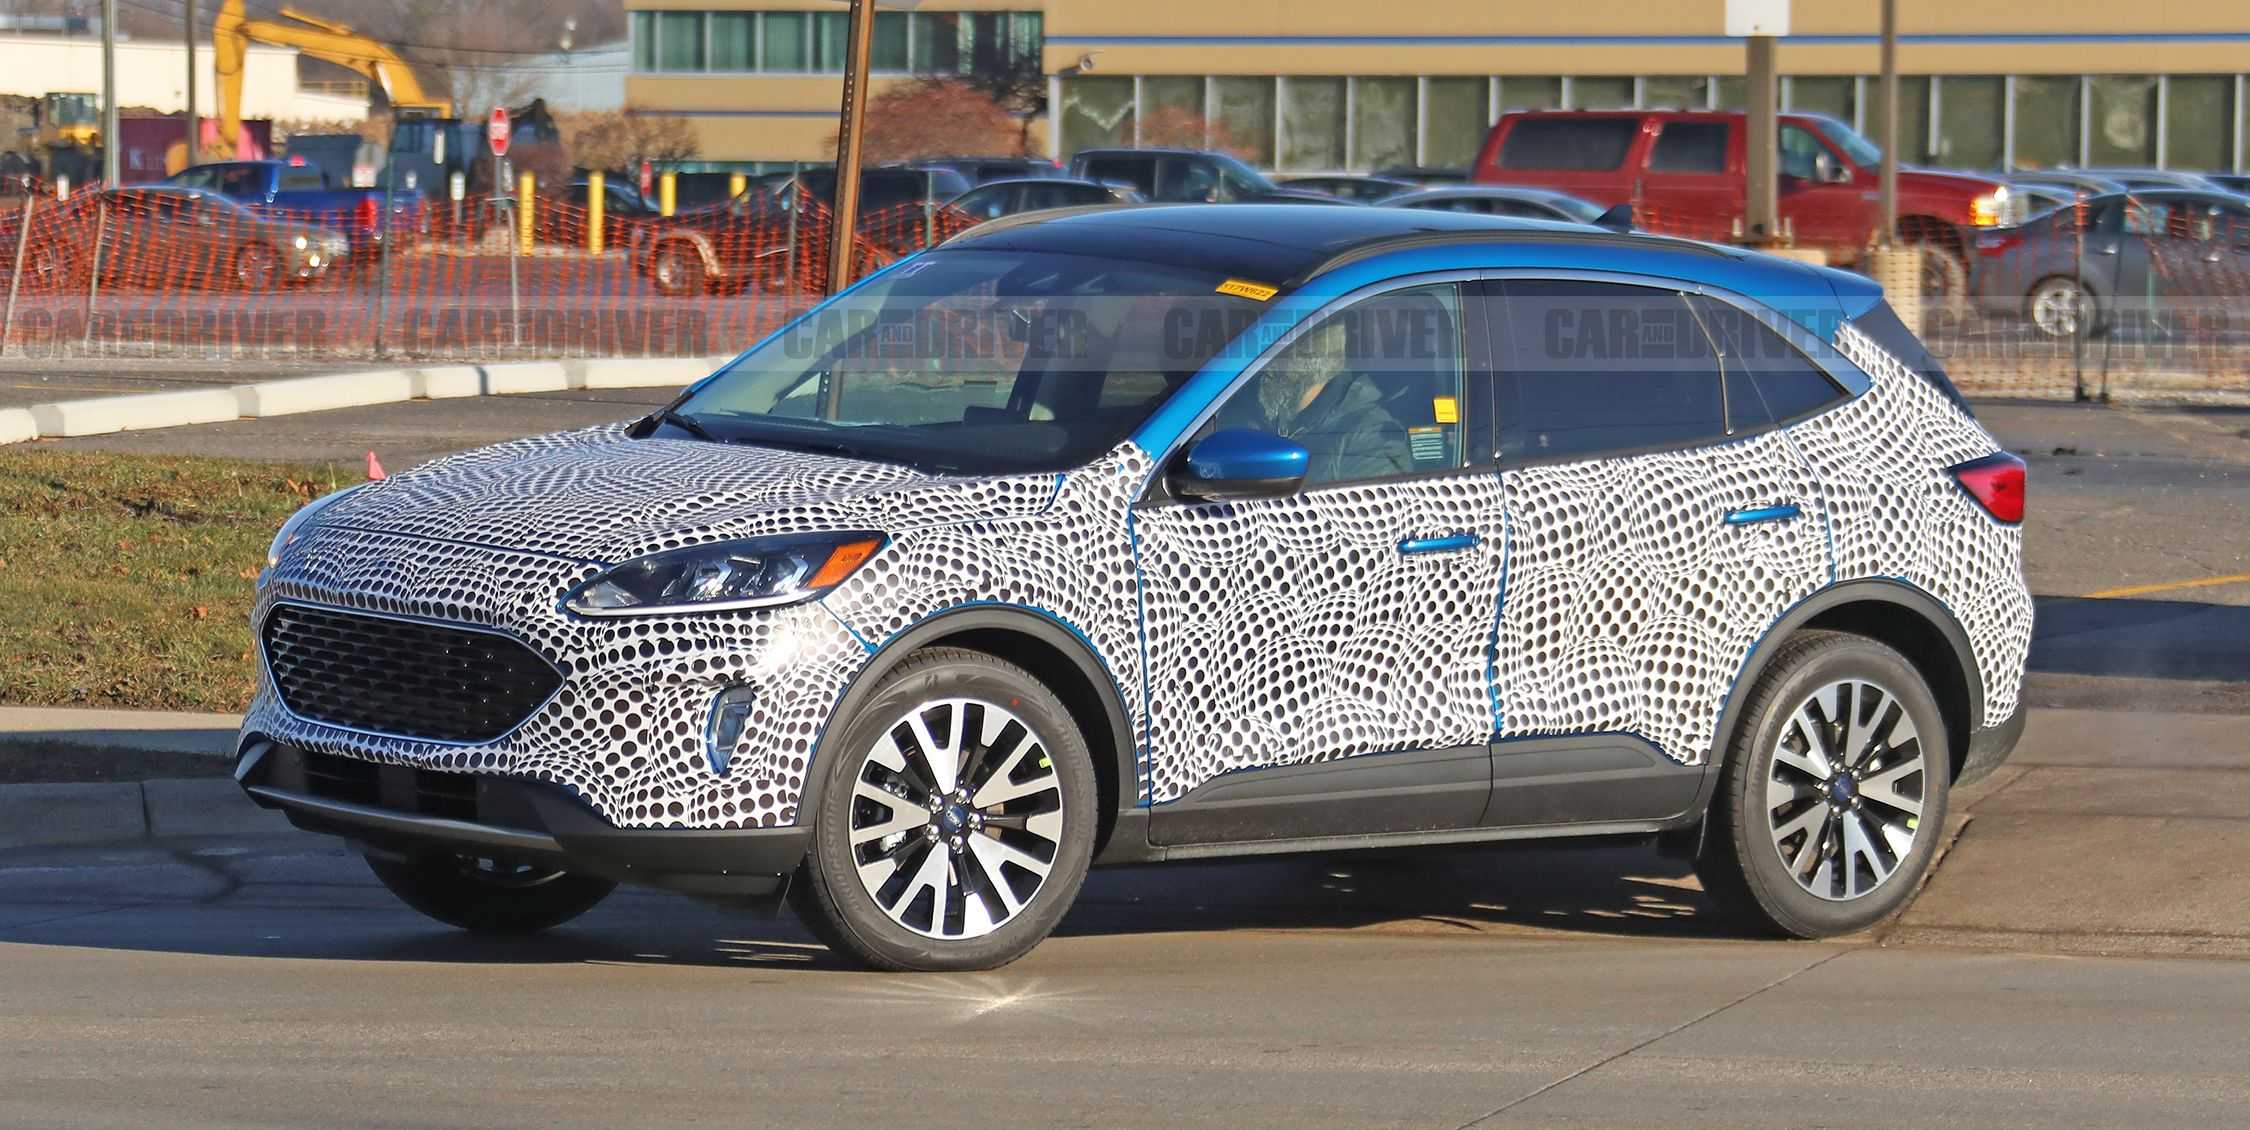 2020 Ford Escape Spy Photos - New Compact Crossover